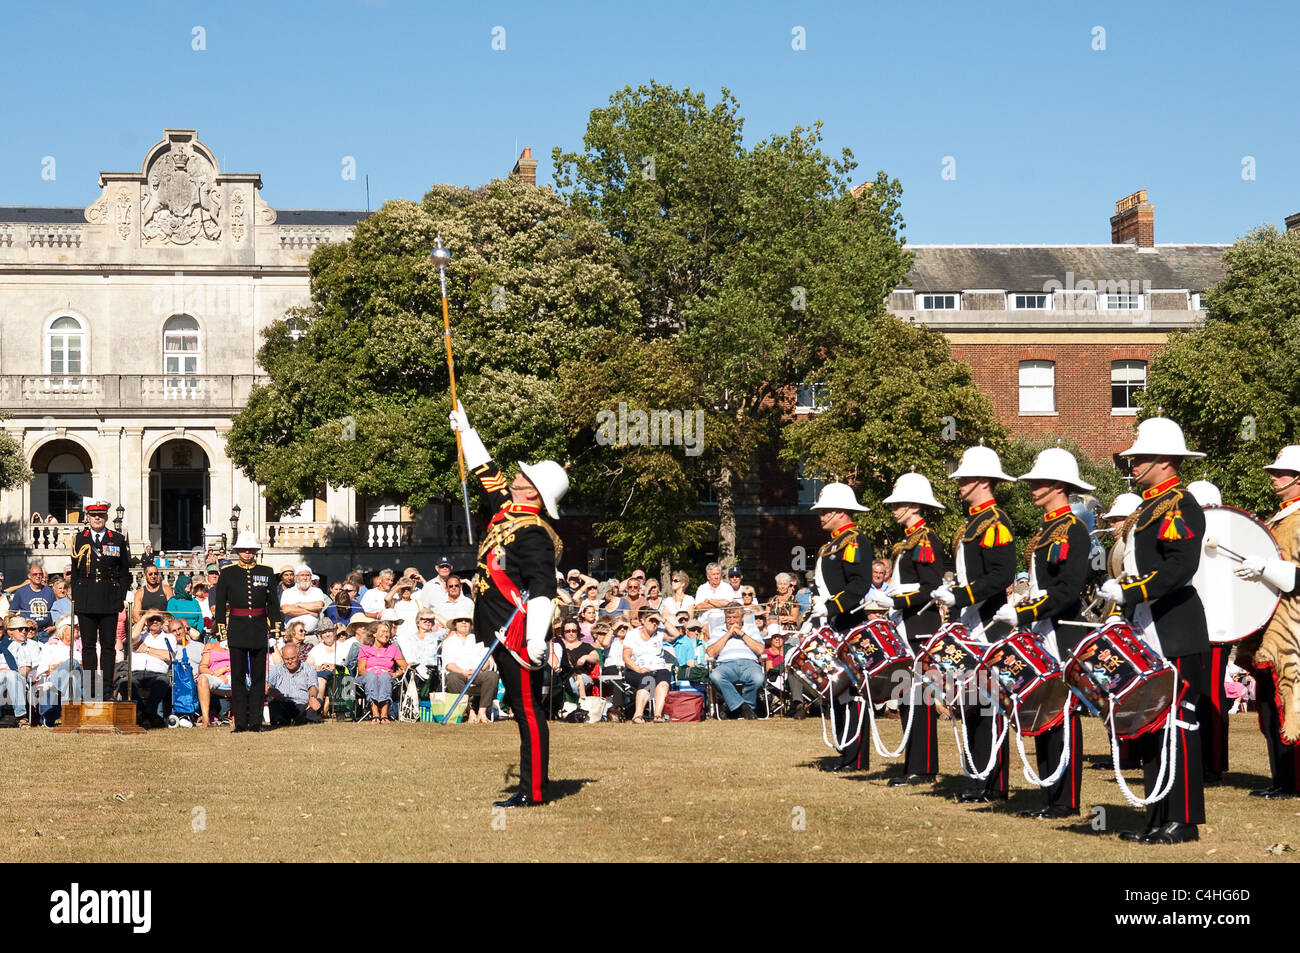 photo royal marching village stock gathering drum pipe of massed at scotland braemar a the with major bands games